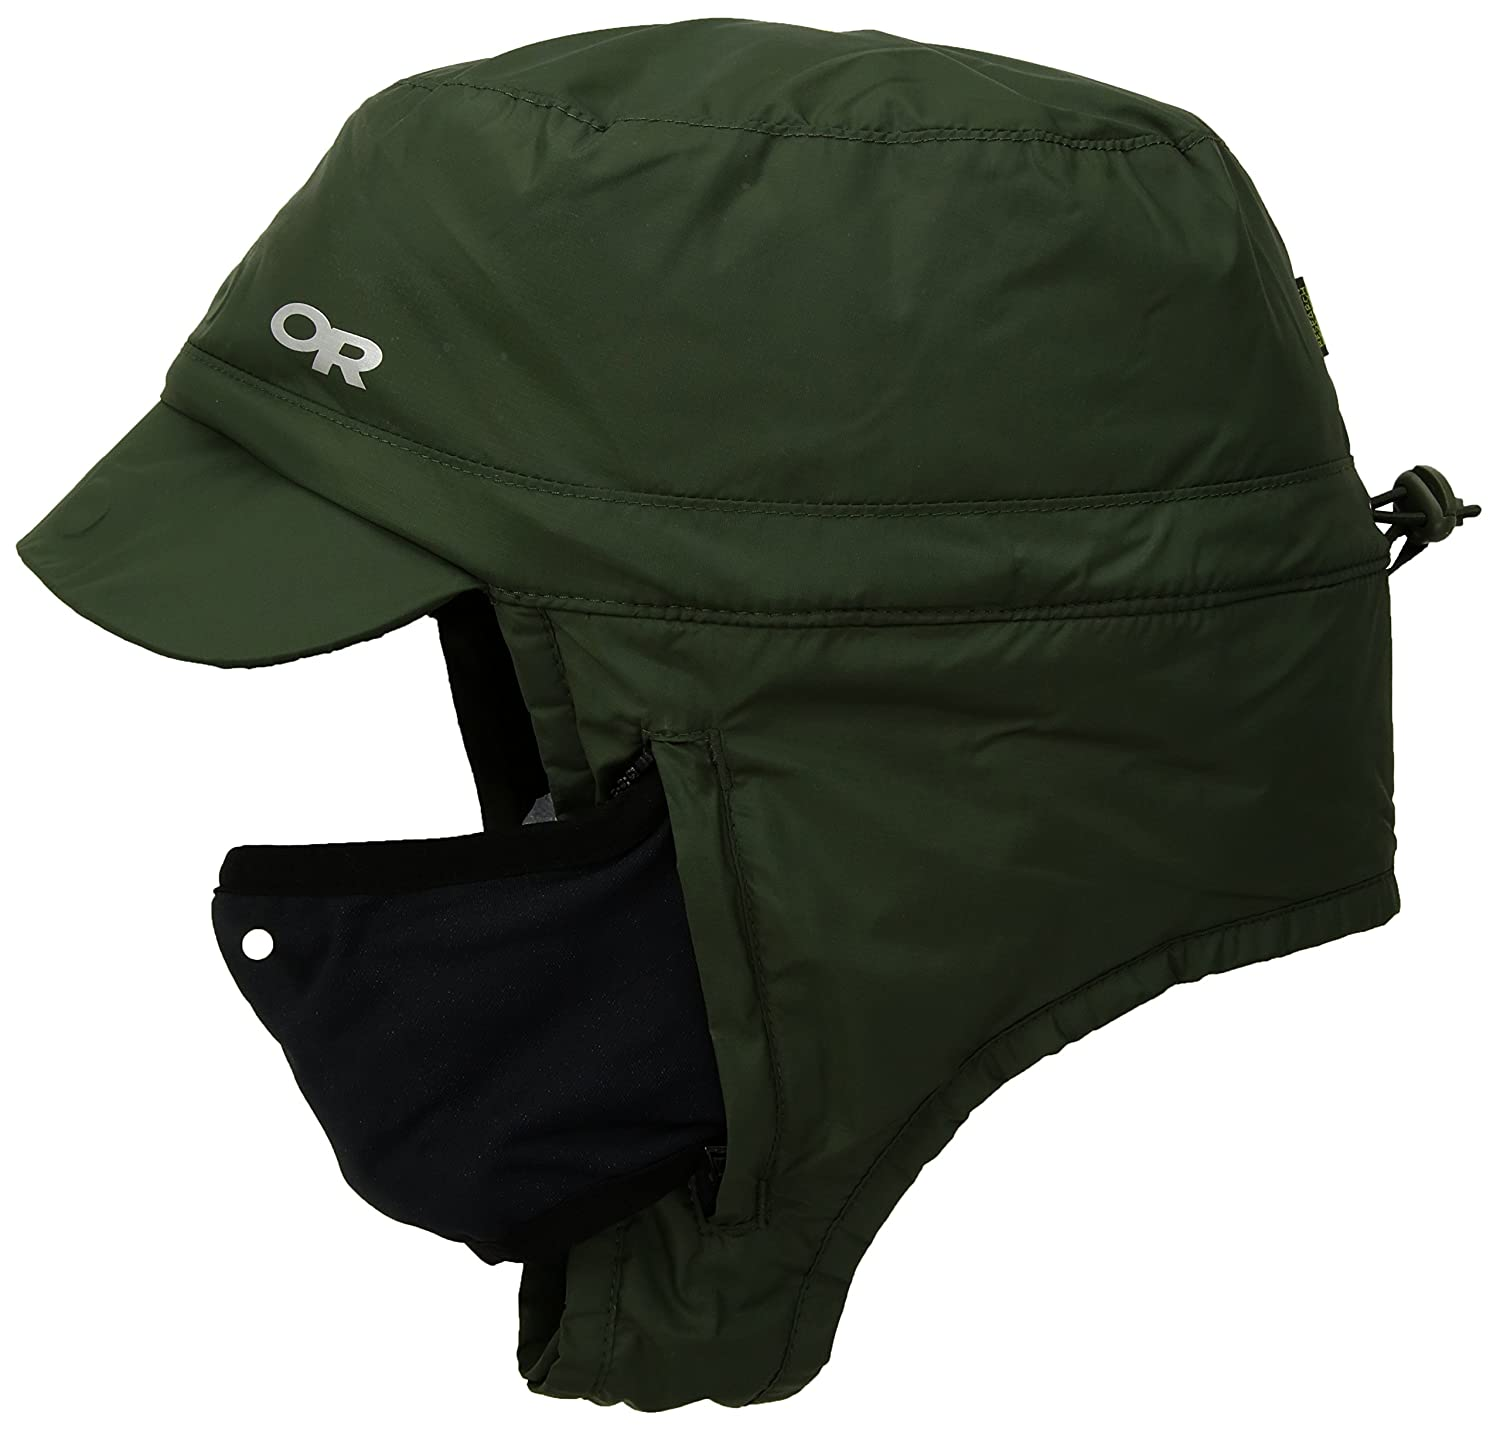 6ca4e56f4ec Amazon.com  Outdoor Research Frostline Hat  Sports   Outdoors